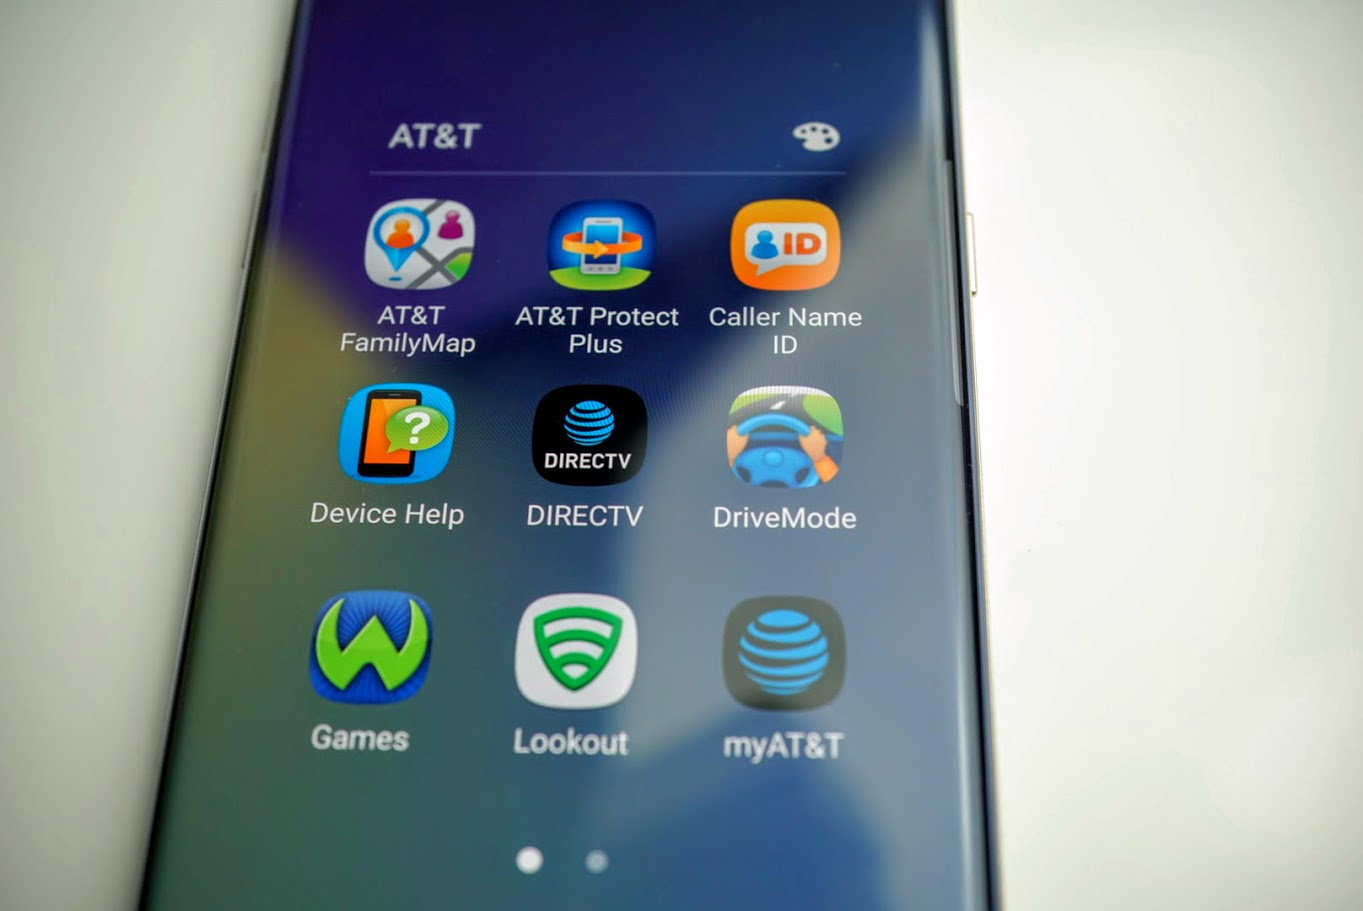 Note 7 AT&T bloat